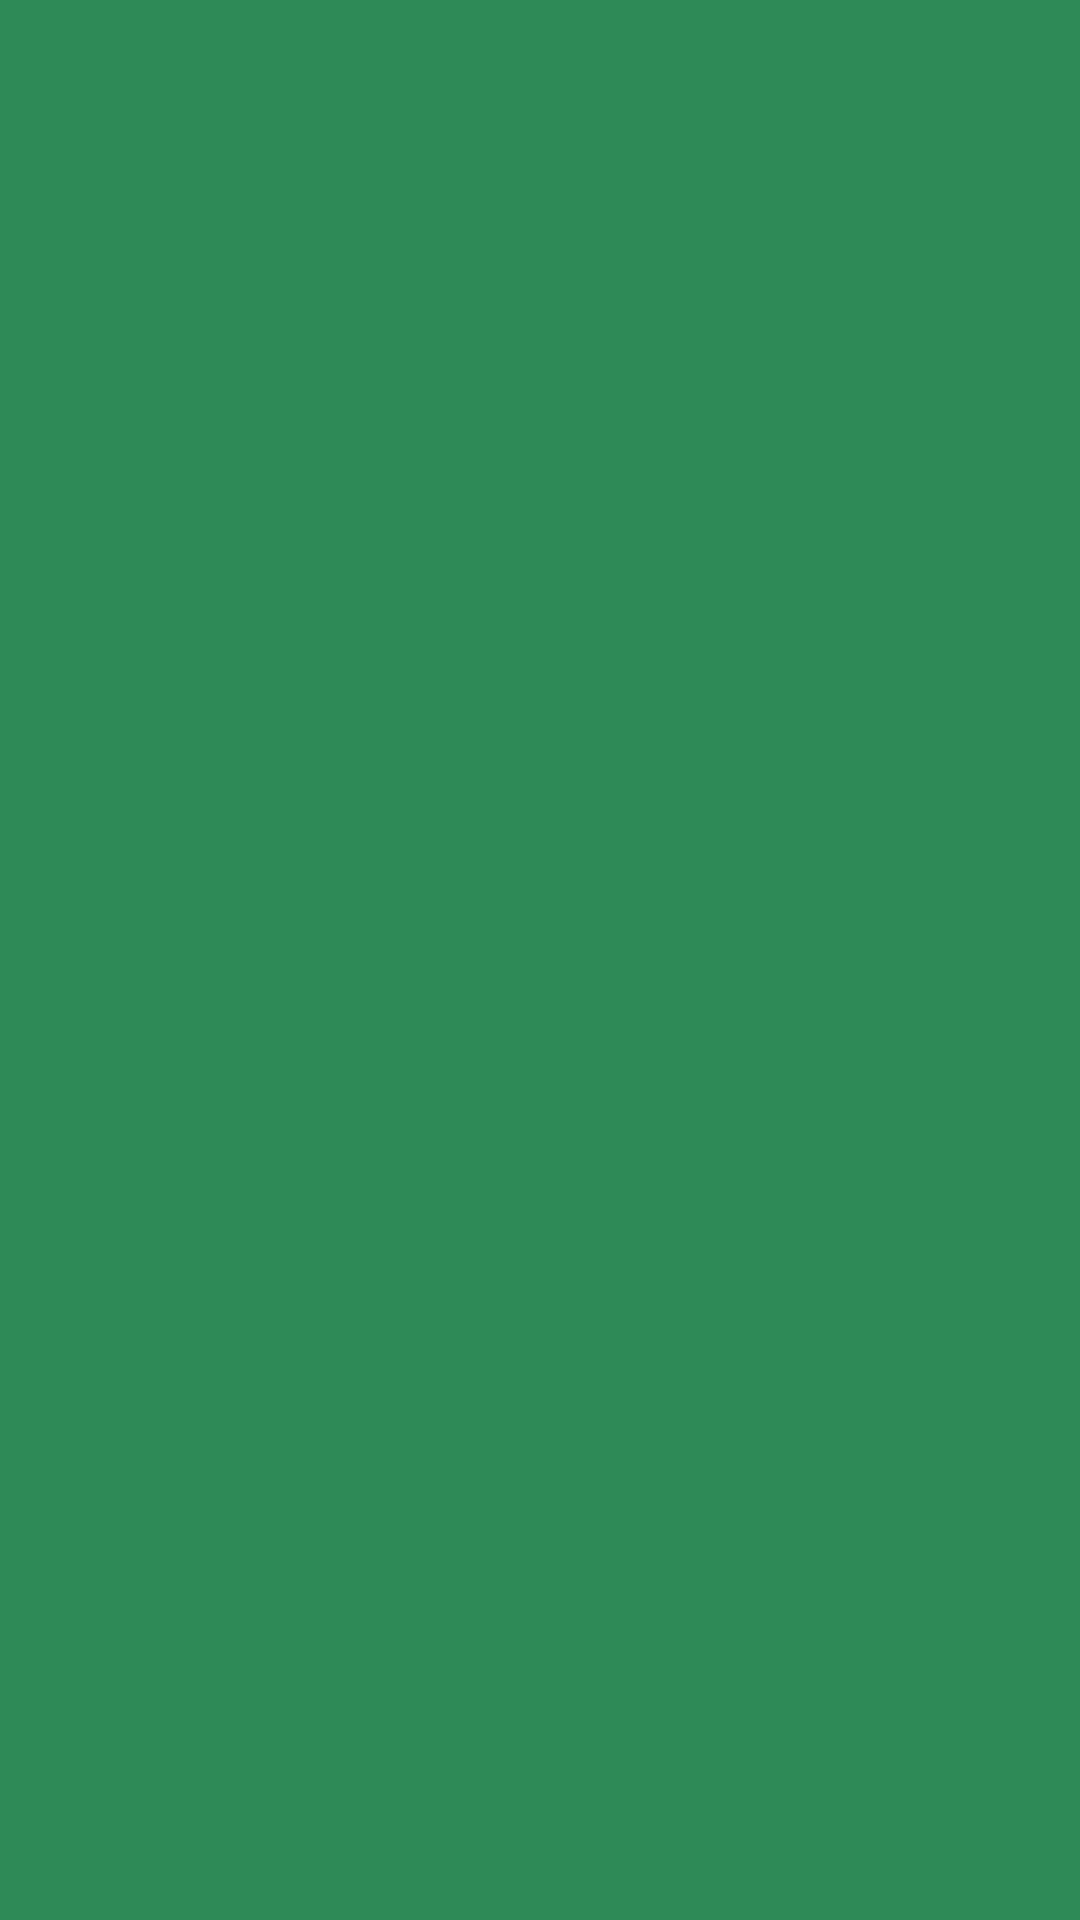 1080x1920 Sea Green Solid Color Background